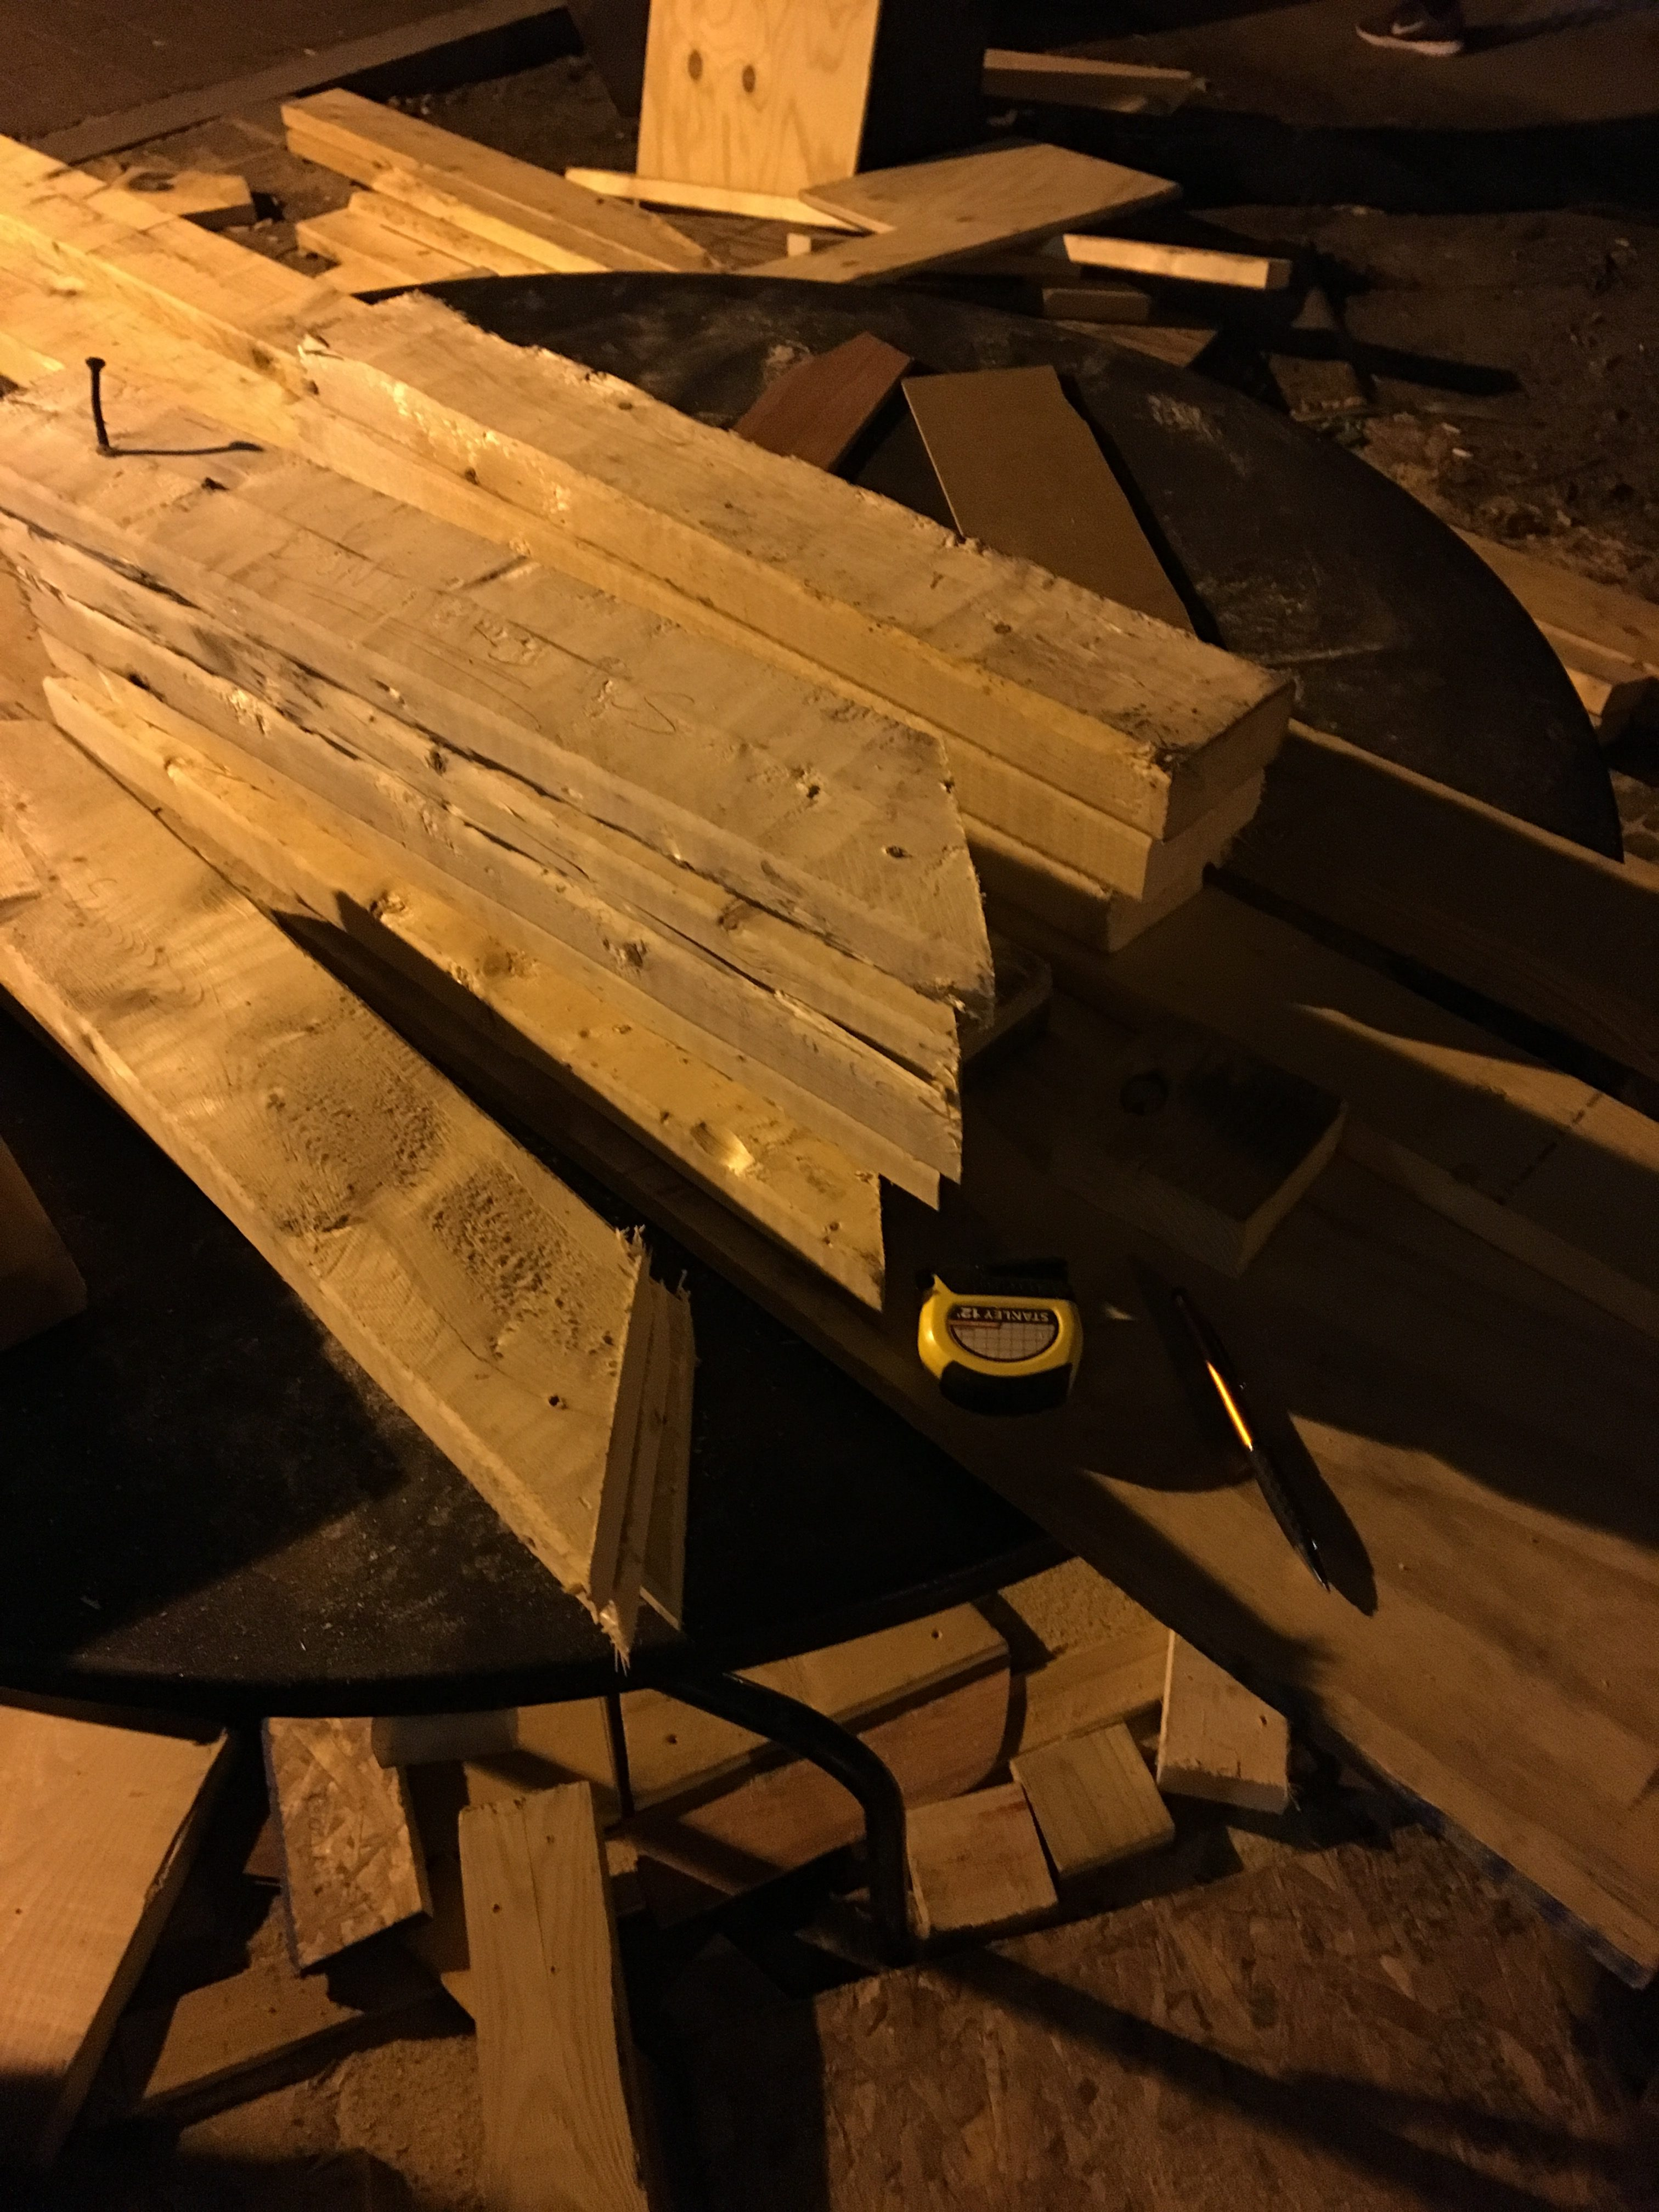 A pile of 2x4s with diagonally-cut edges on a table. The picture is dark.